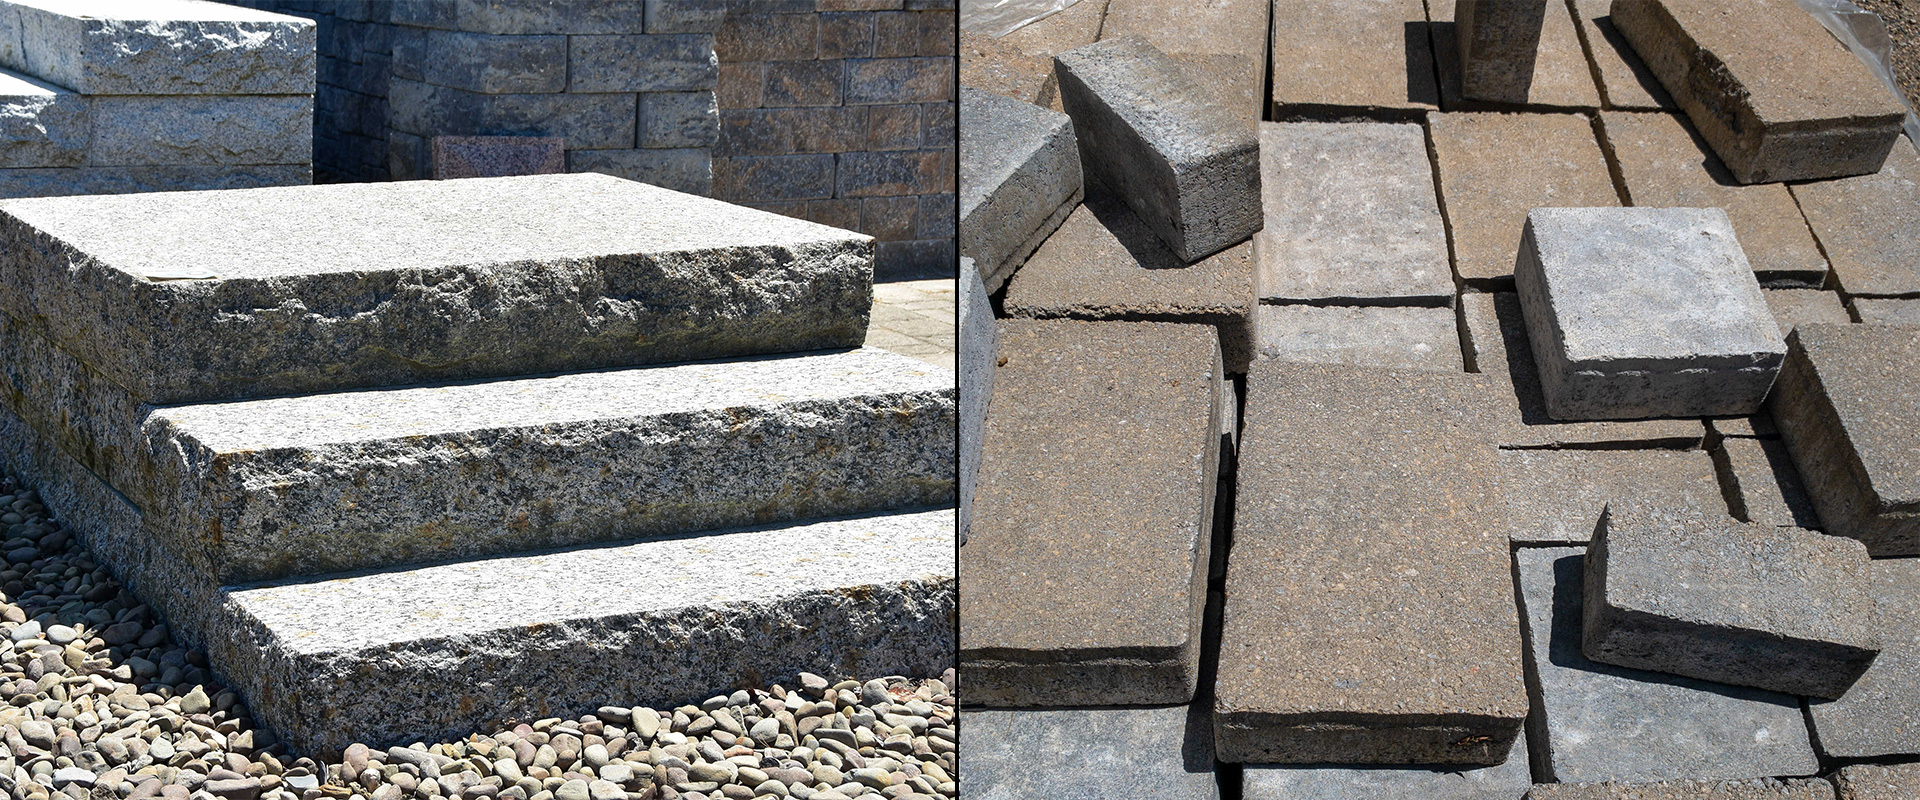 Hardscape examples, granite steps and stone pavers